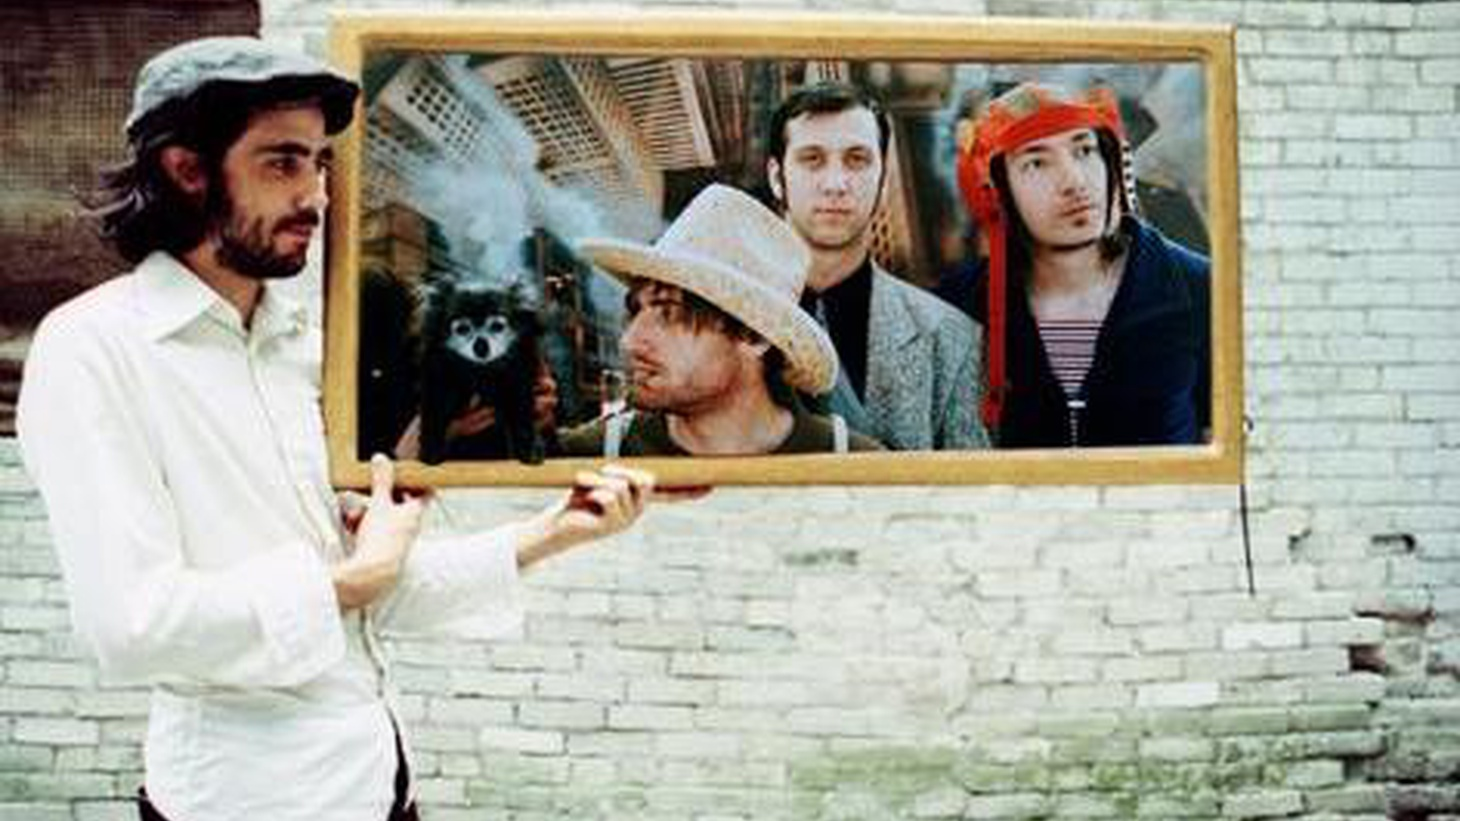 ...the title tune from his new CD.   Montreal-based artist Patrick Watson is a mad scientist of sorts, introducing unlikely instruments like plungers and old foley effects into his songs...